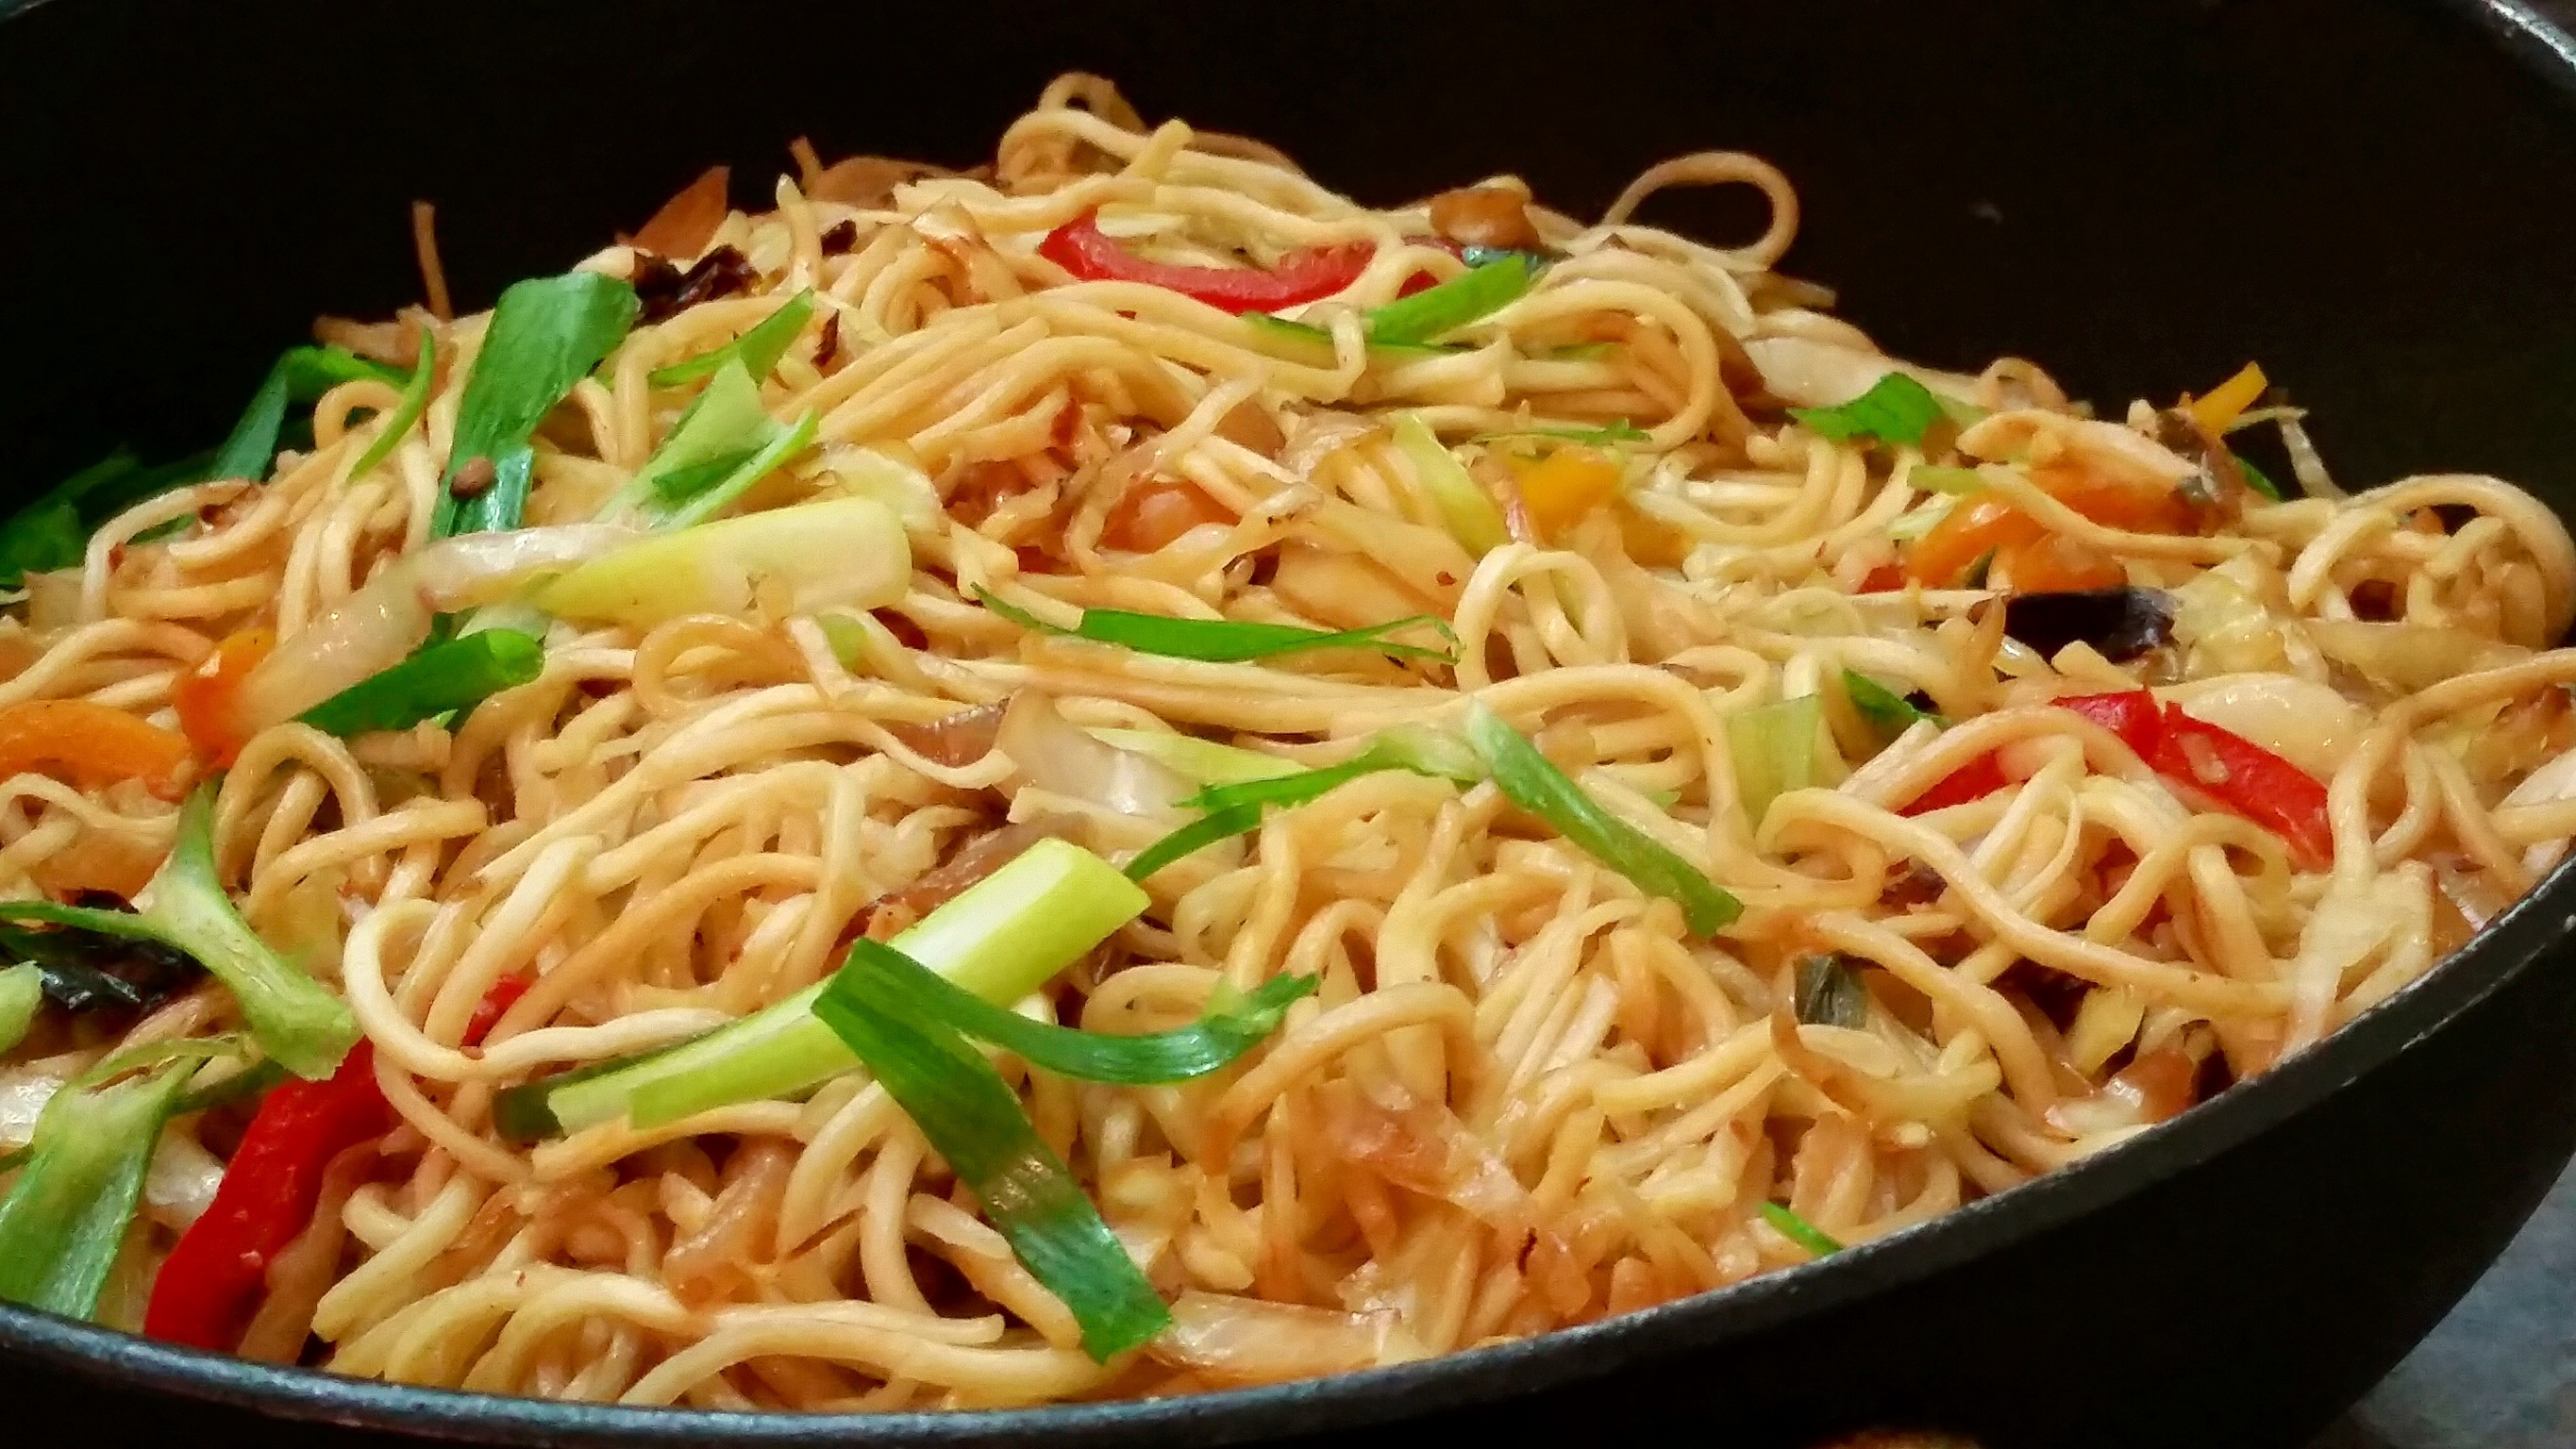 images of noodles - photo #41